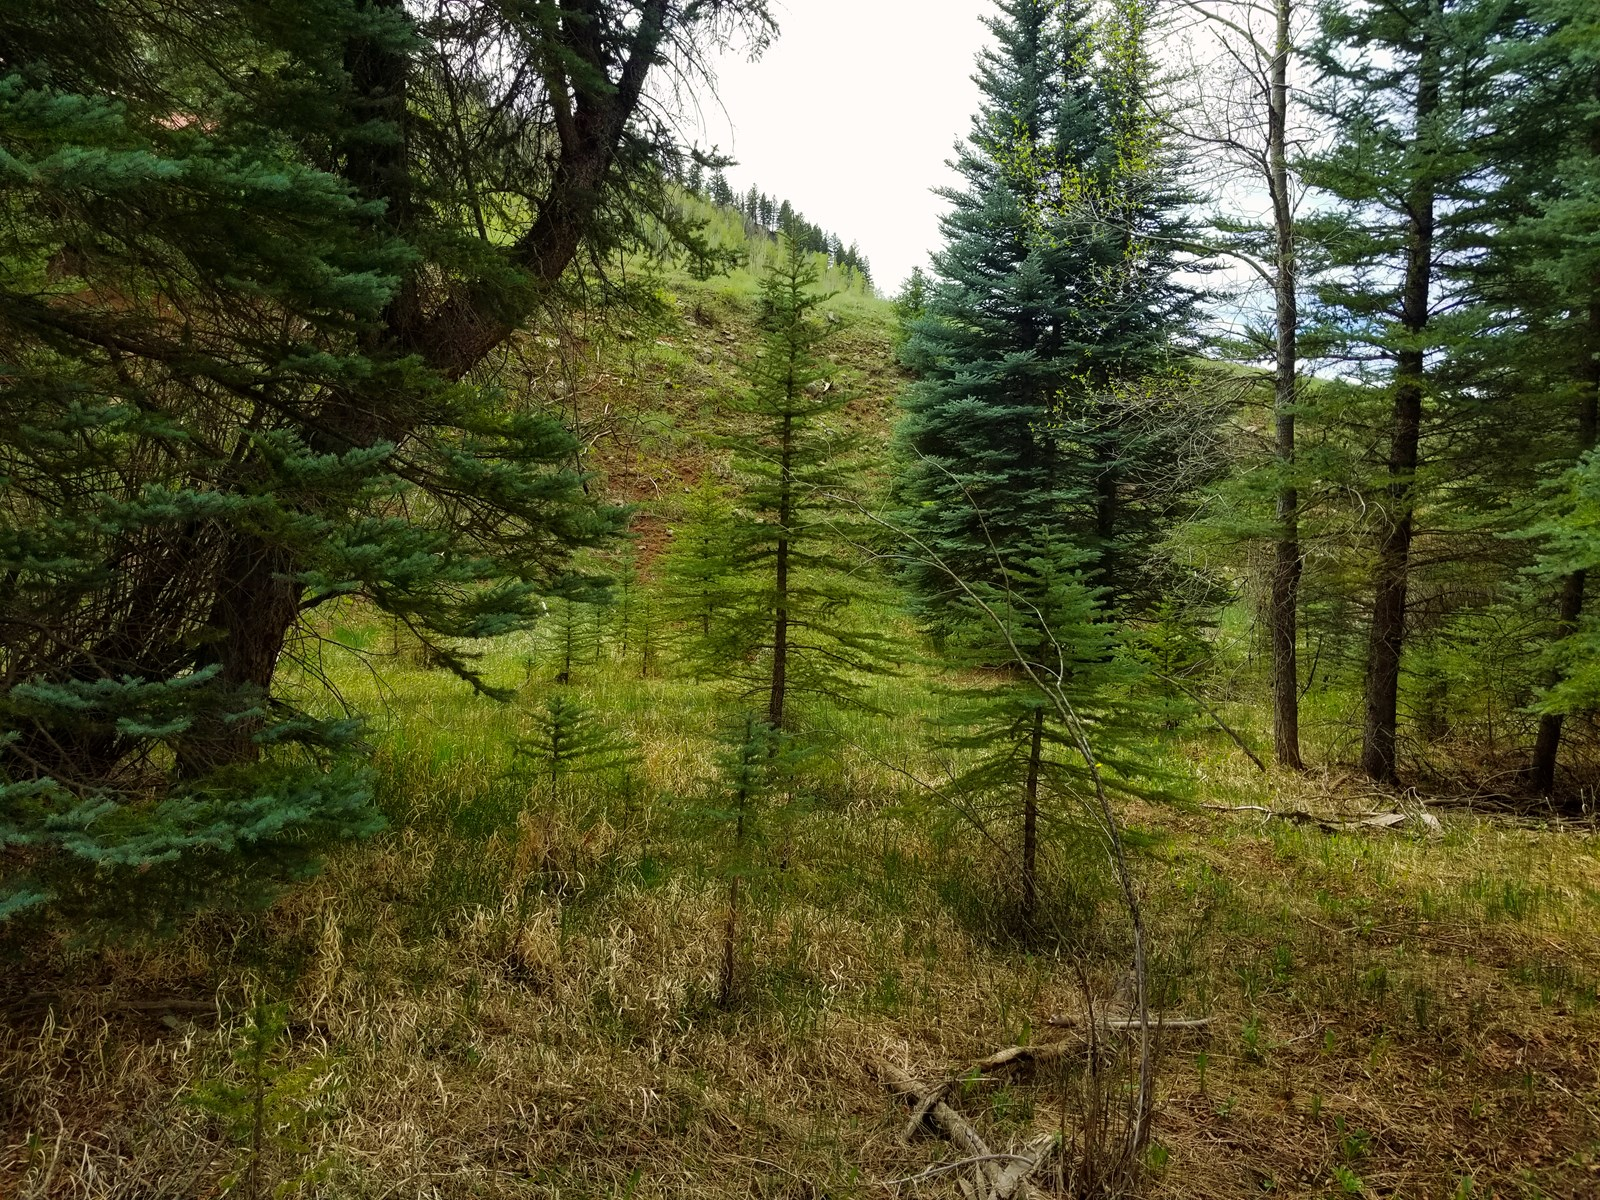 Vacant Land For Sale in Dolores, CO!